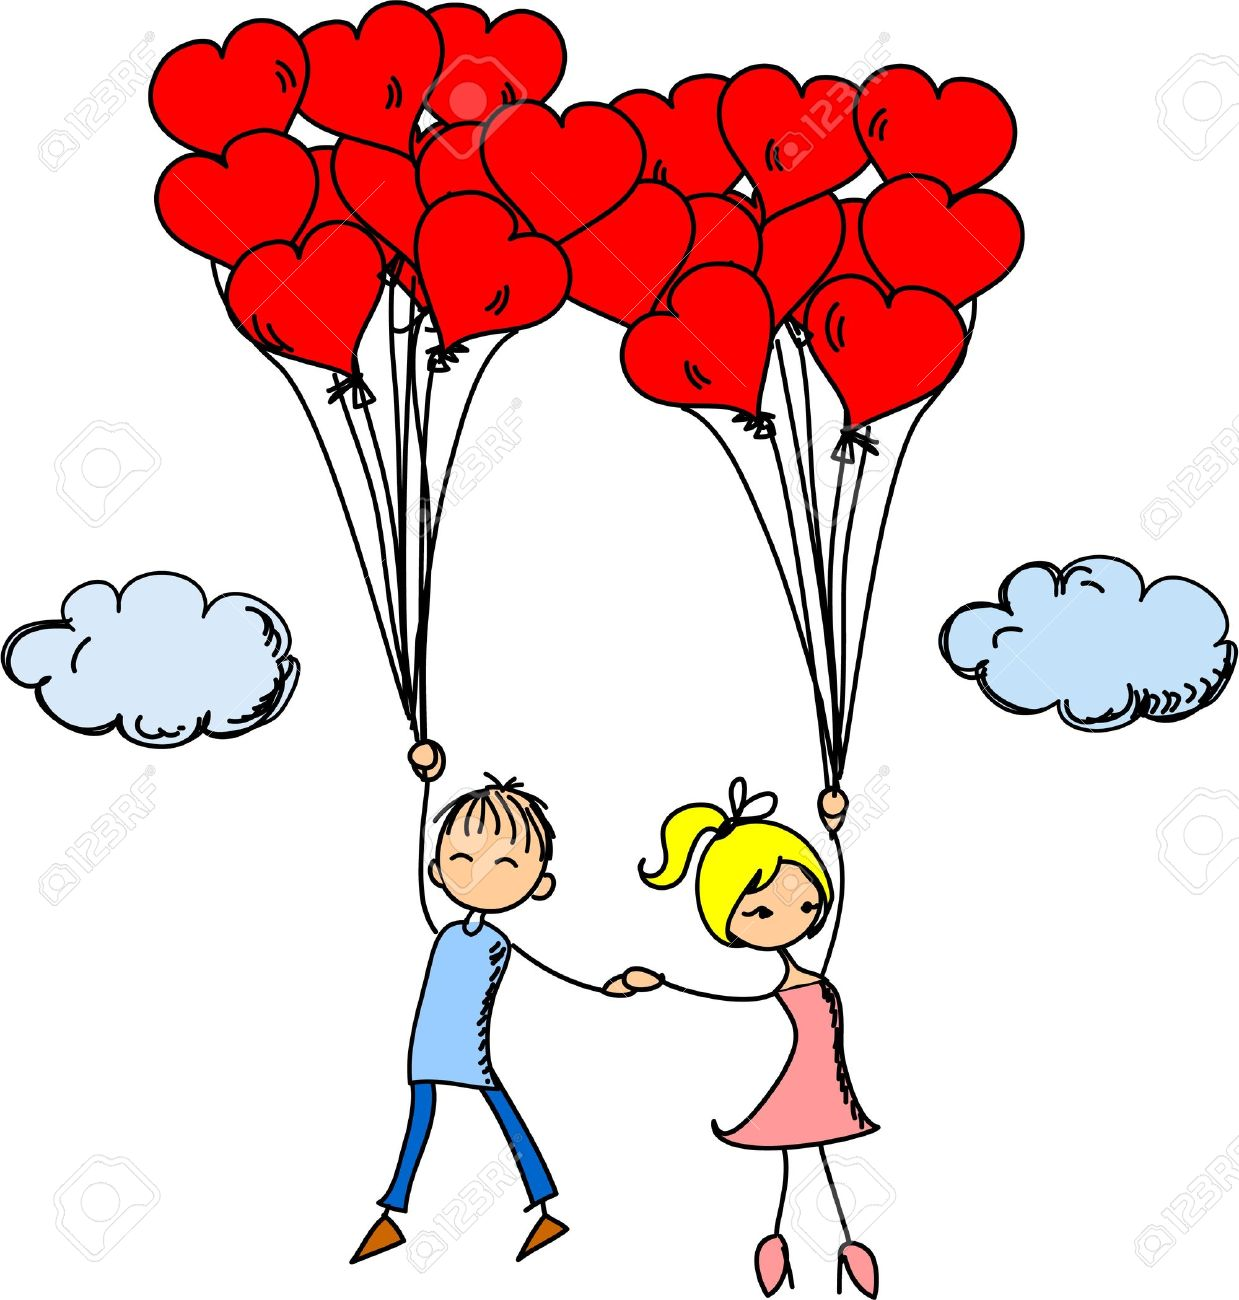 boy and girl in love clipart album on.